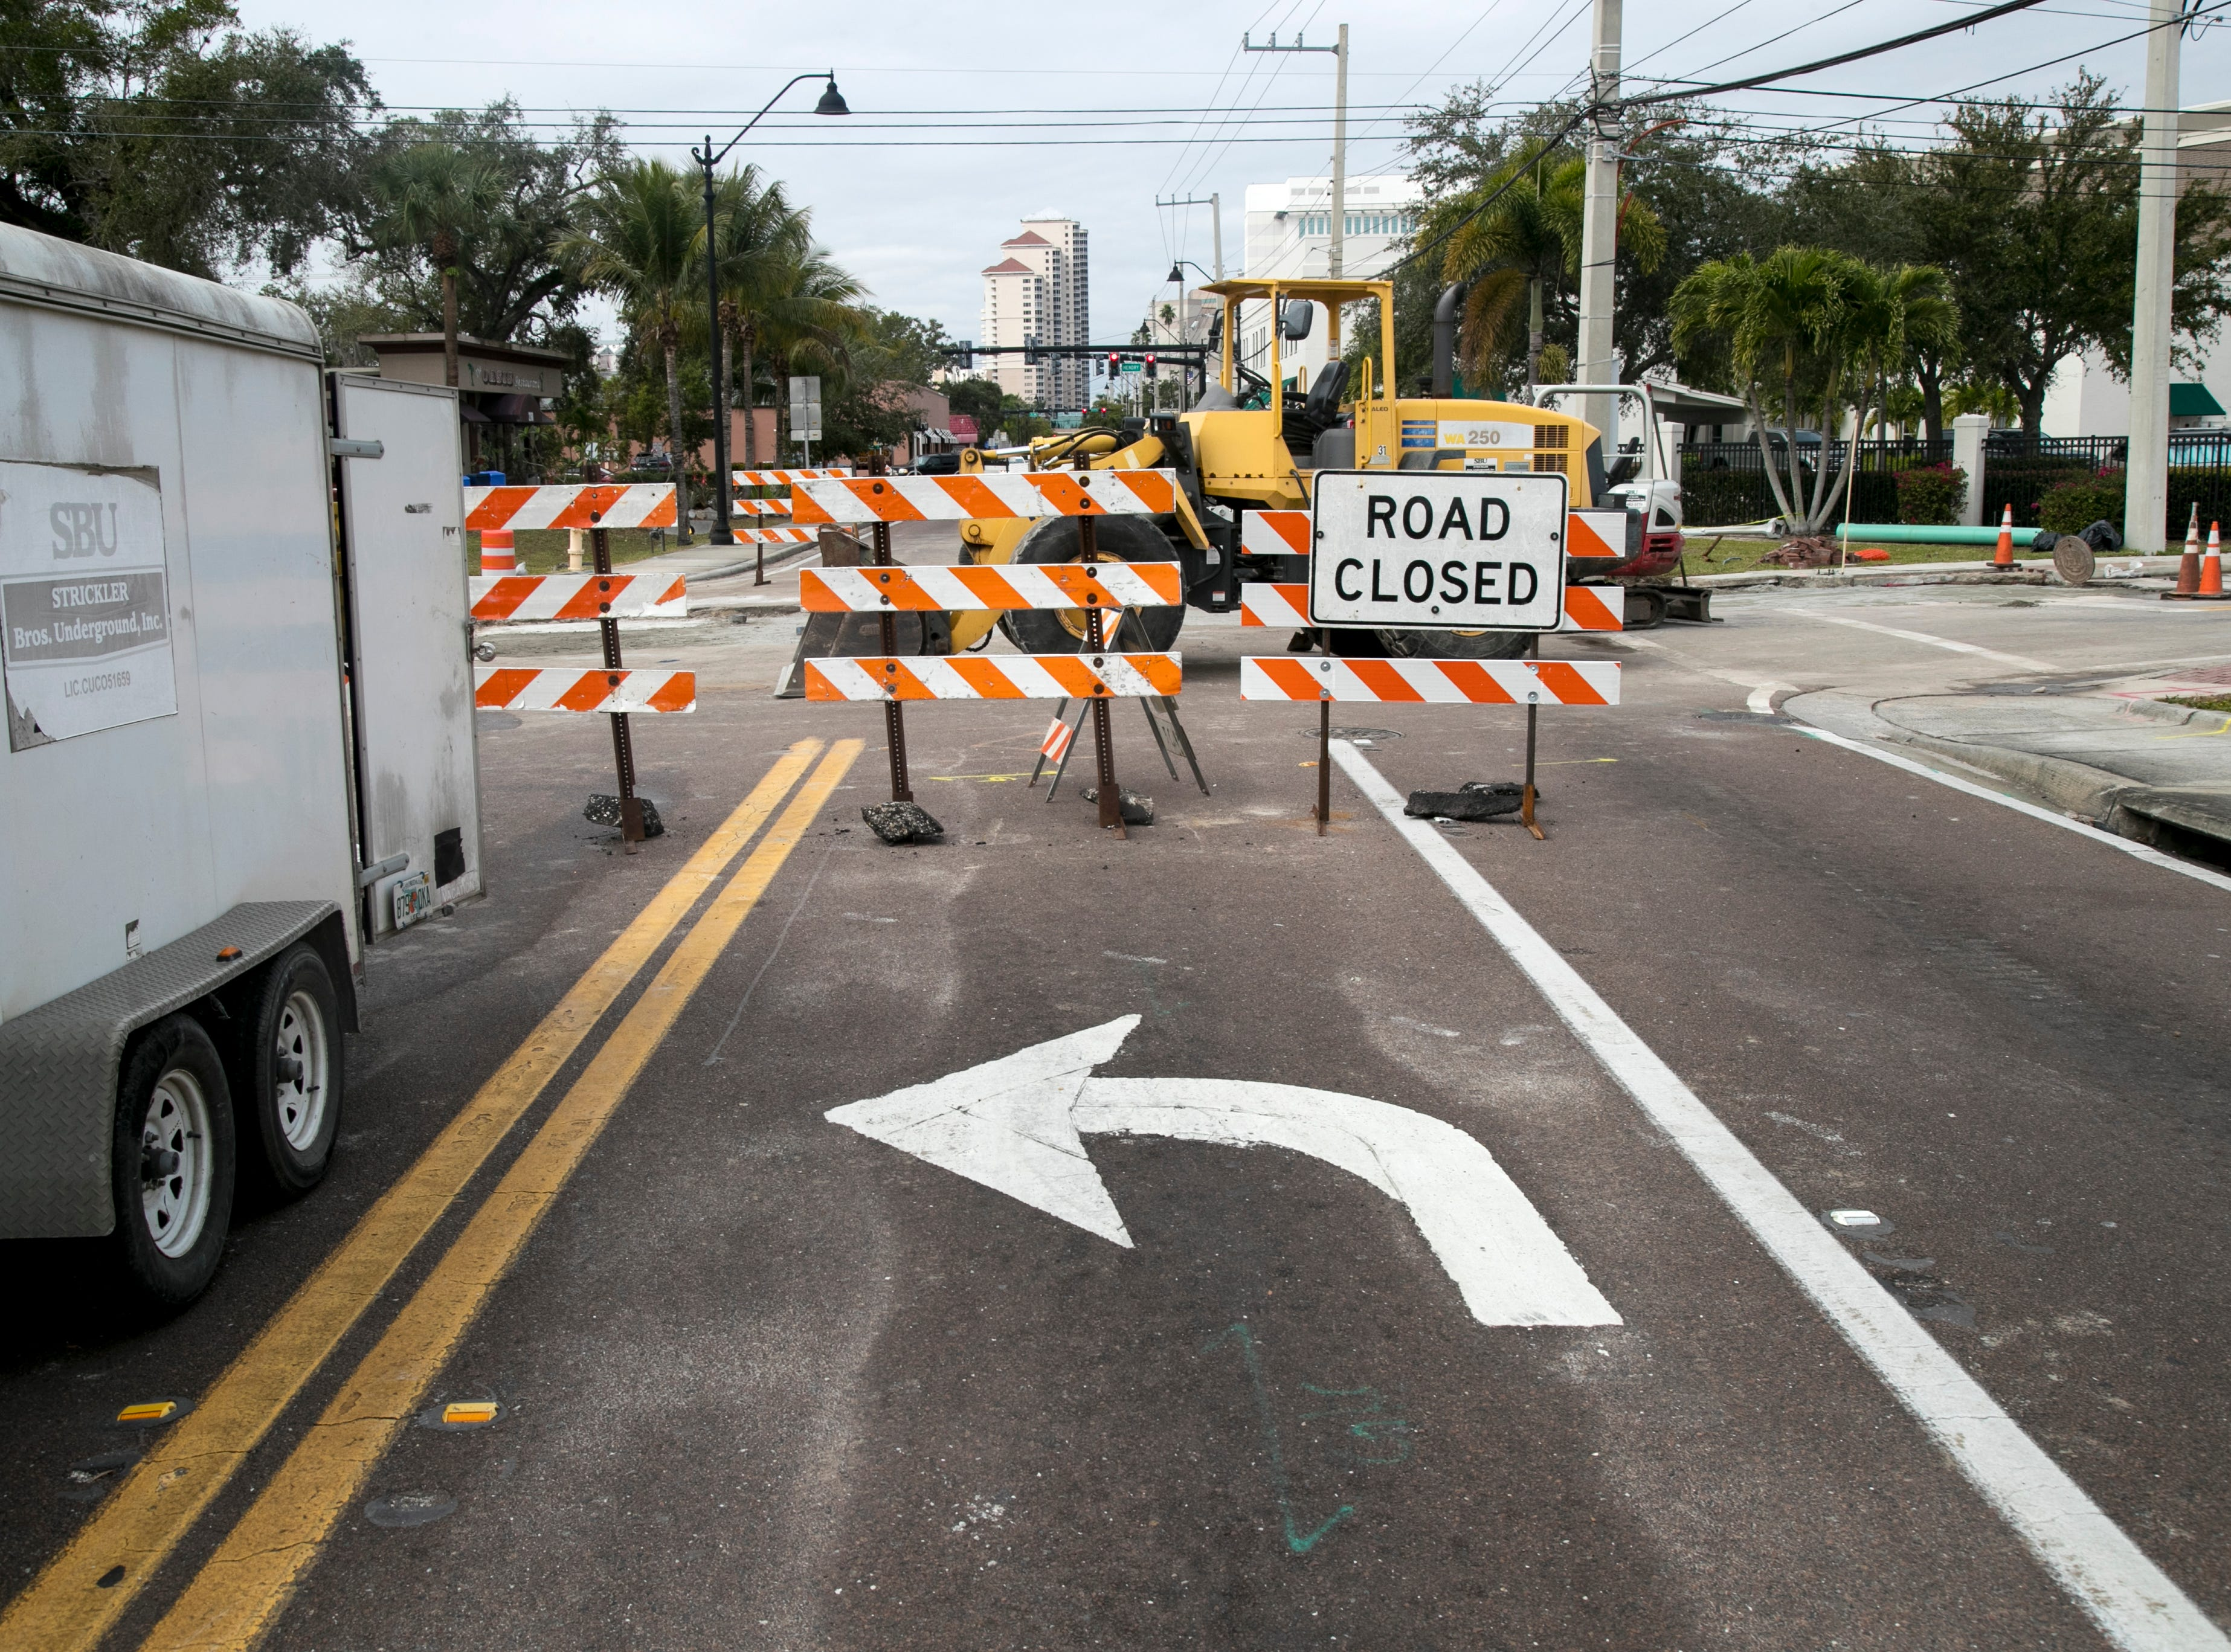 Dr. Martin Luther King Jr. Boulevard in downtown Fort Myers is blocked at Jackson Street.